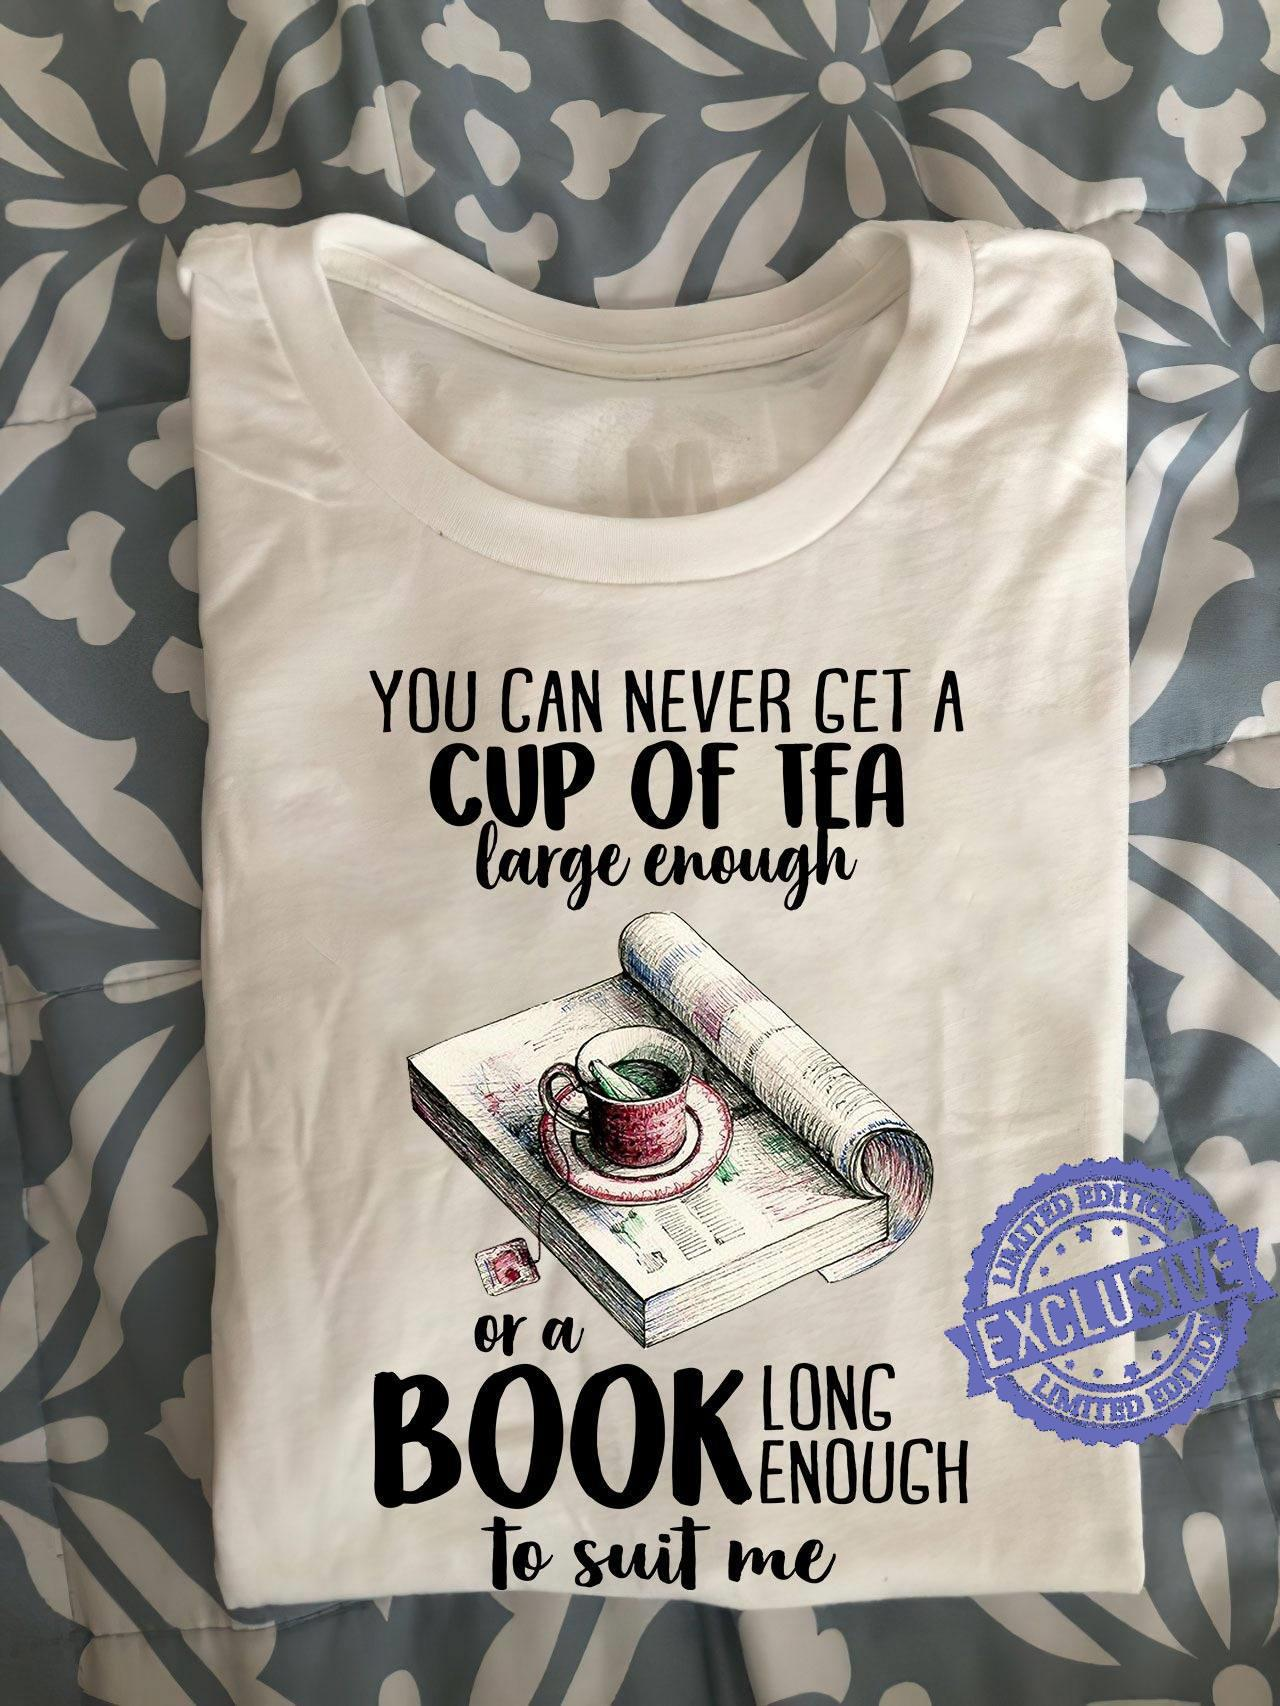 You can never get a cup of tea large enough or a book long enough to suit me shirt